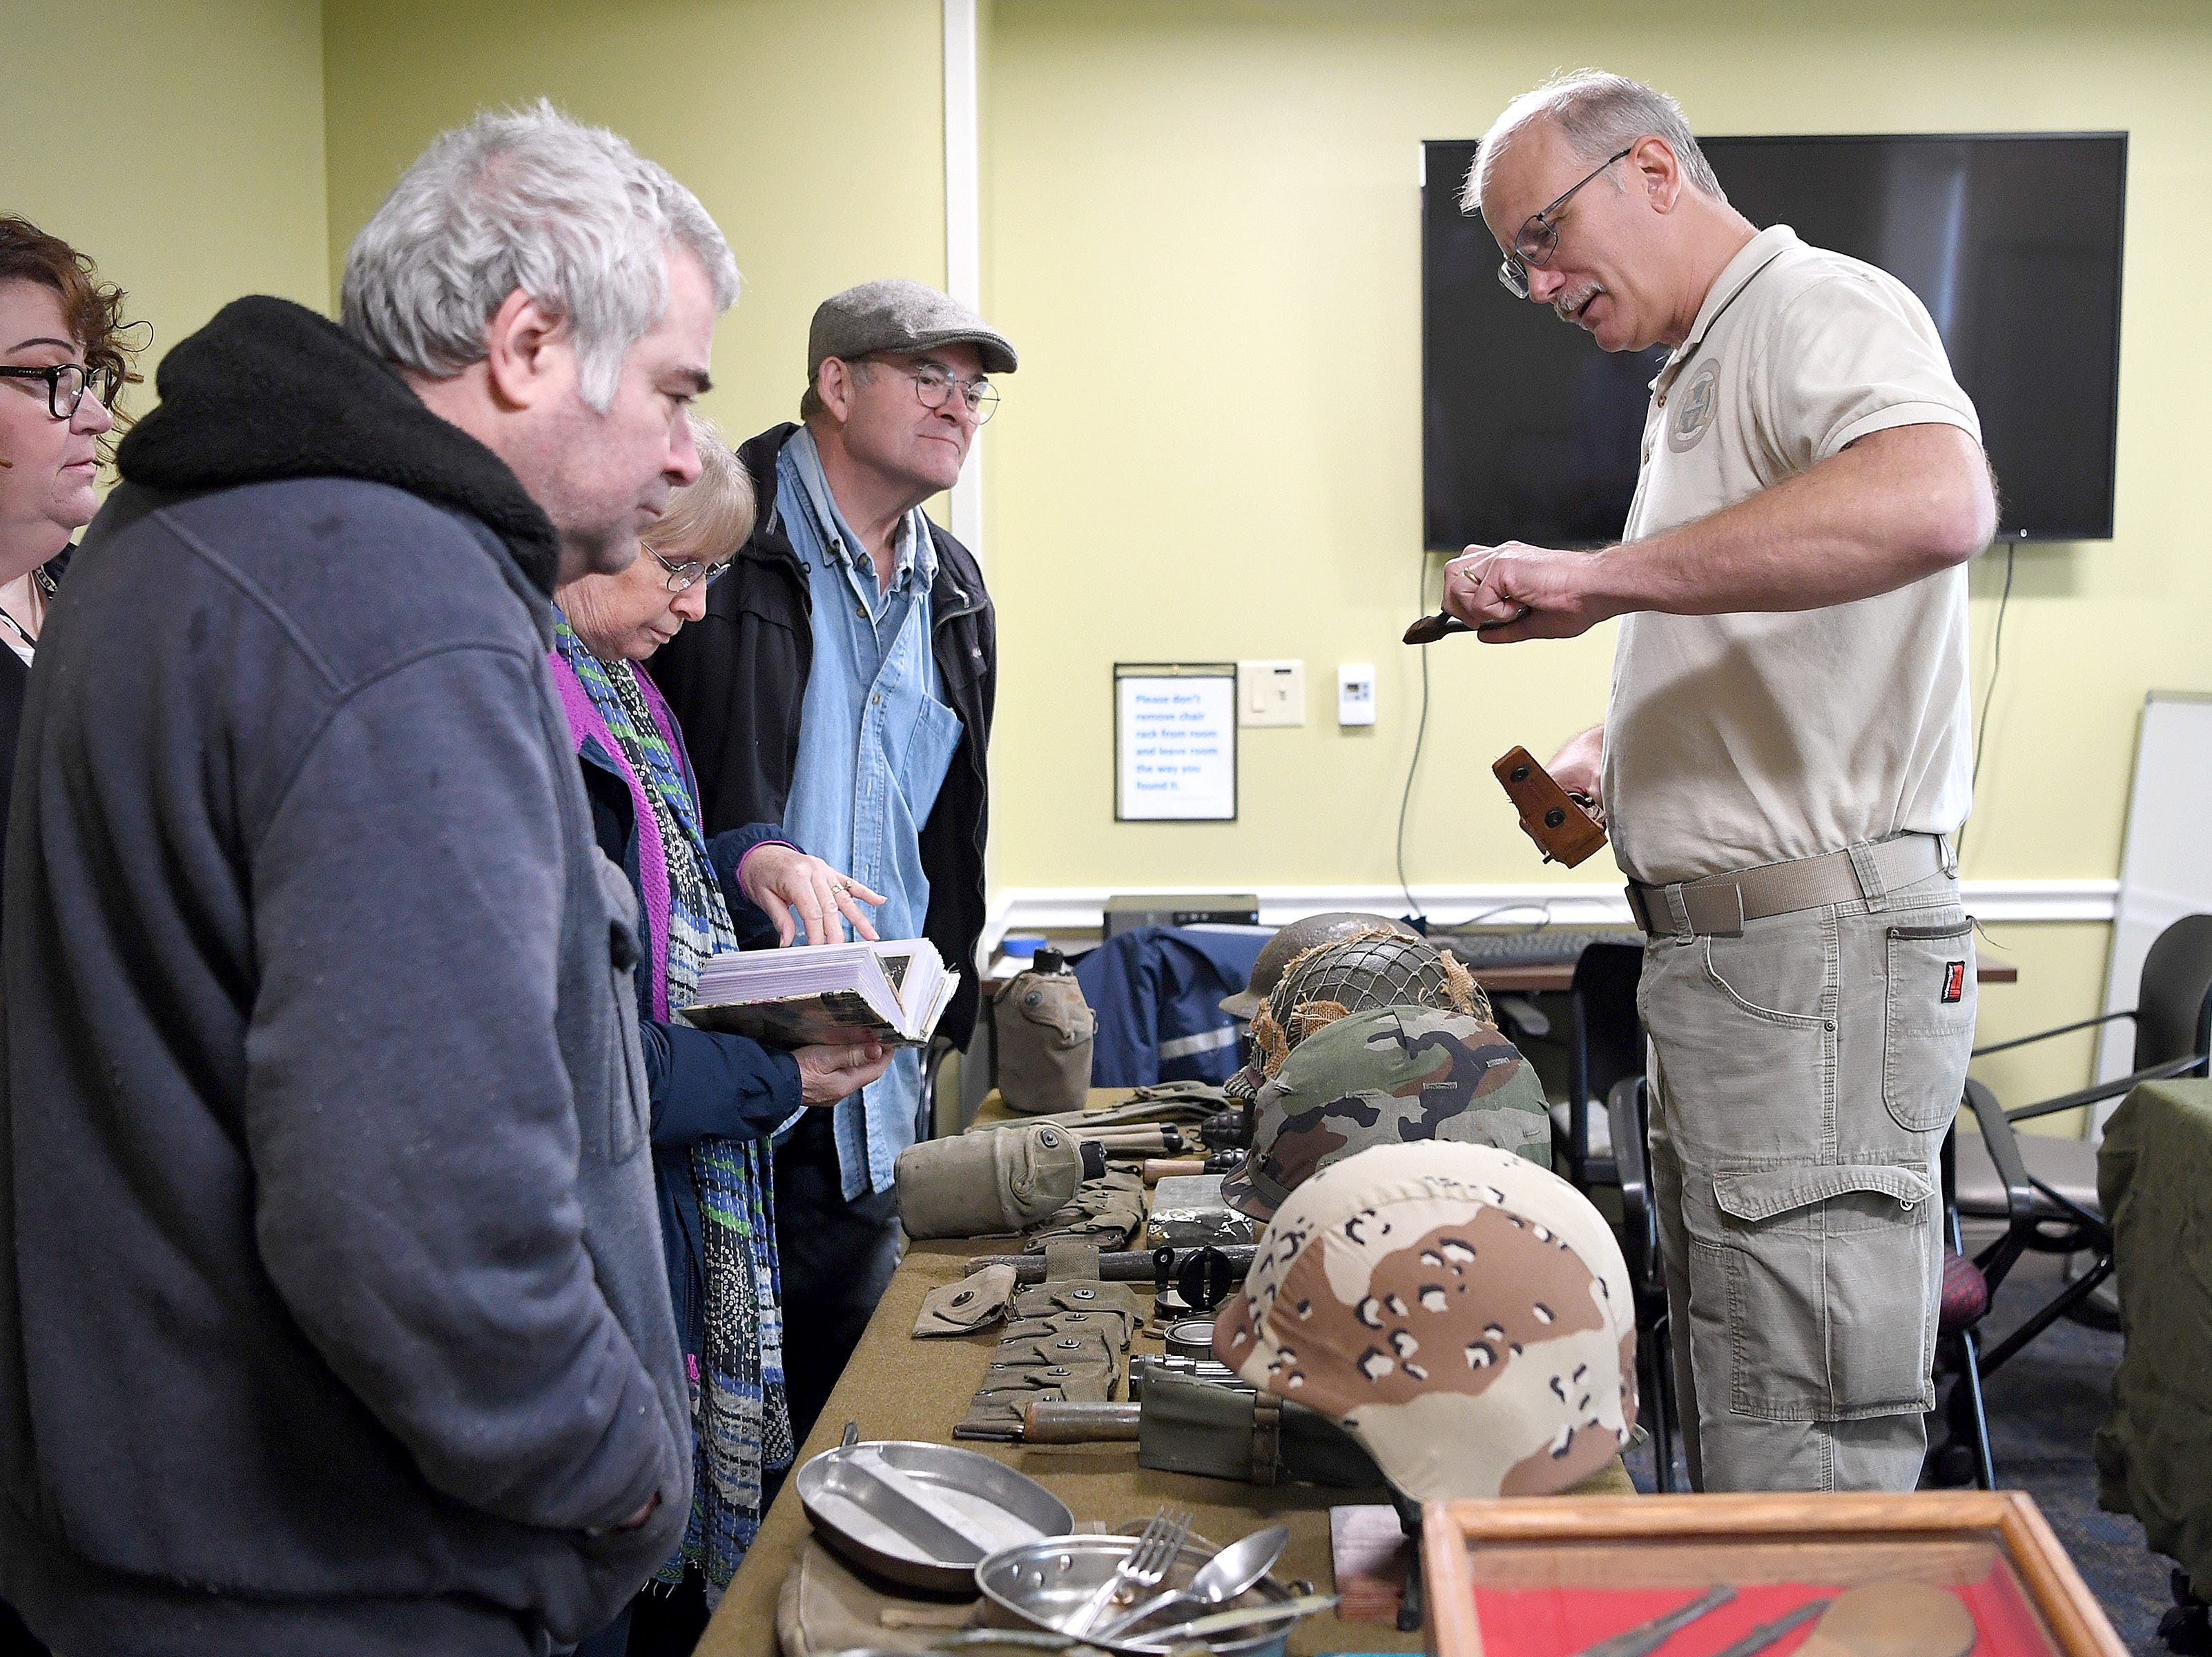 Tom Bugala, curator of the WNC Military History Museum, shows off part of his collection during a ceremony celebrating the opening of the Veterans Hope and Recovery Center on the campus of the Charles George VA Medical Center on Oct. 26, 2018.